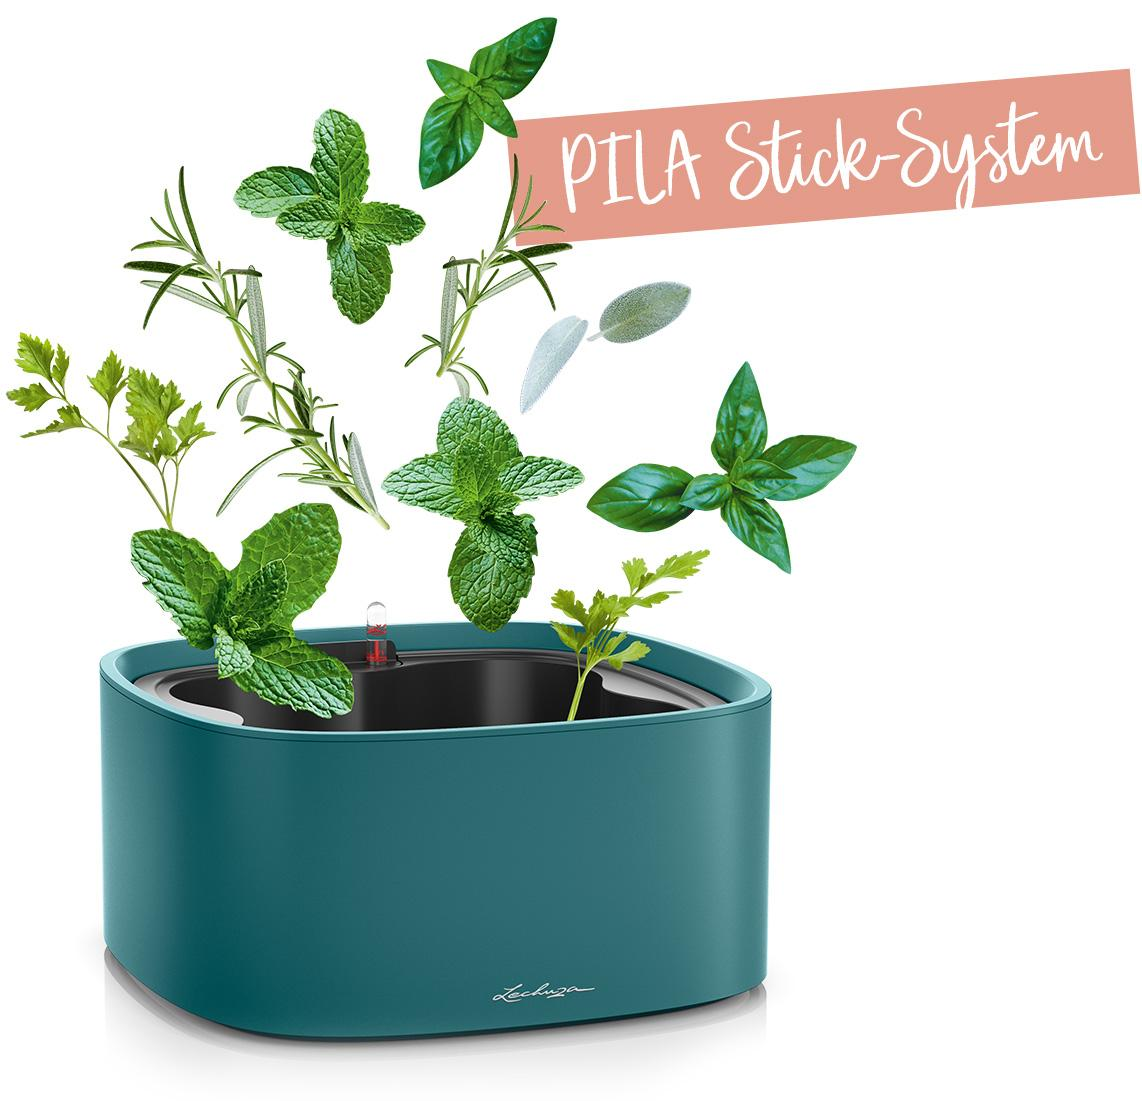 PILA stick system recommended for herbs